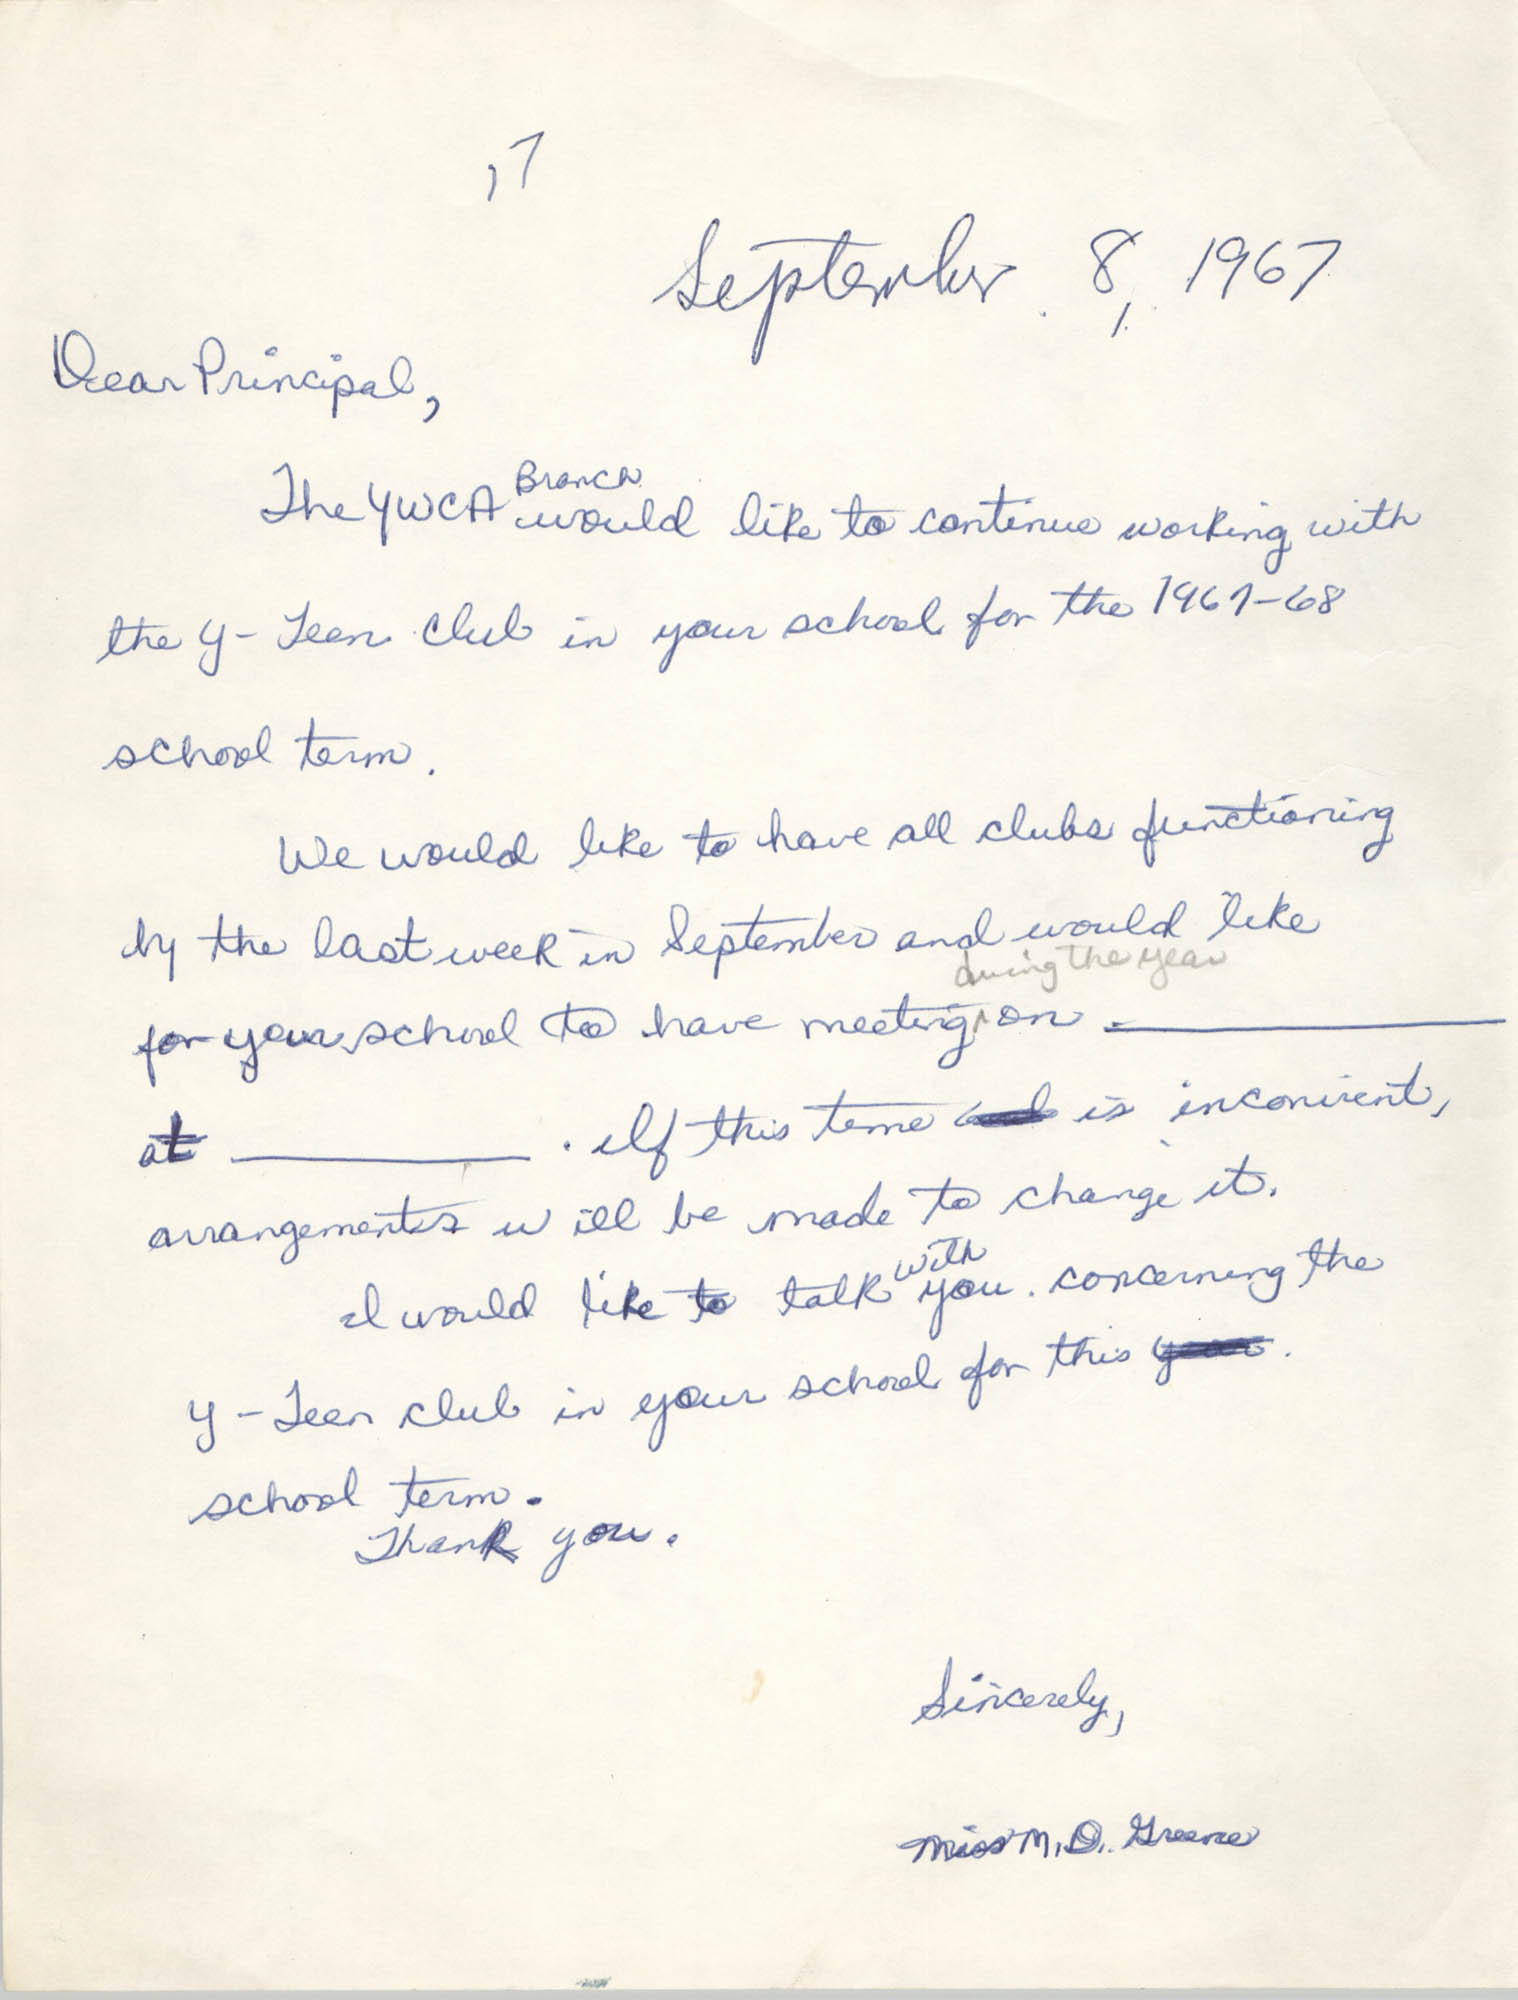 Letter from Marguerite D. Greene, September 8, 1967